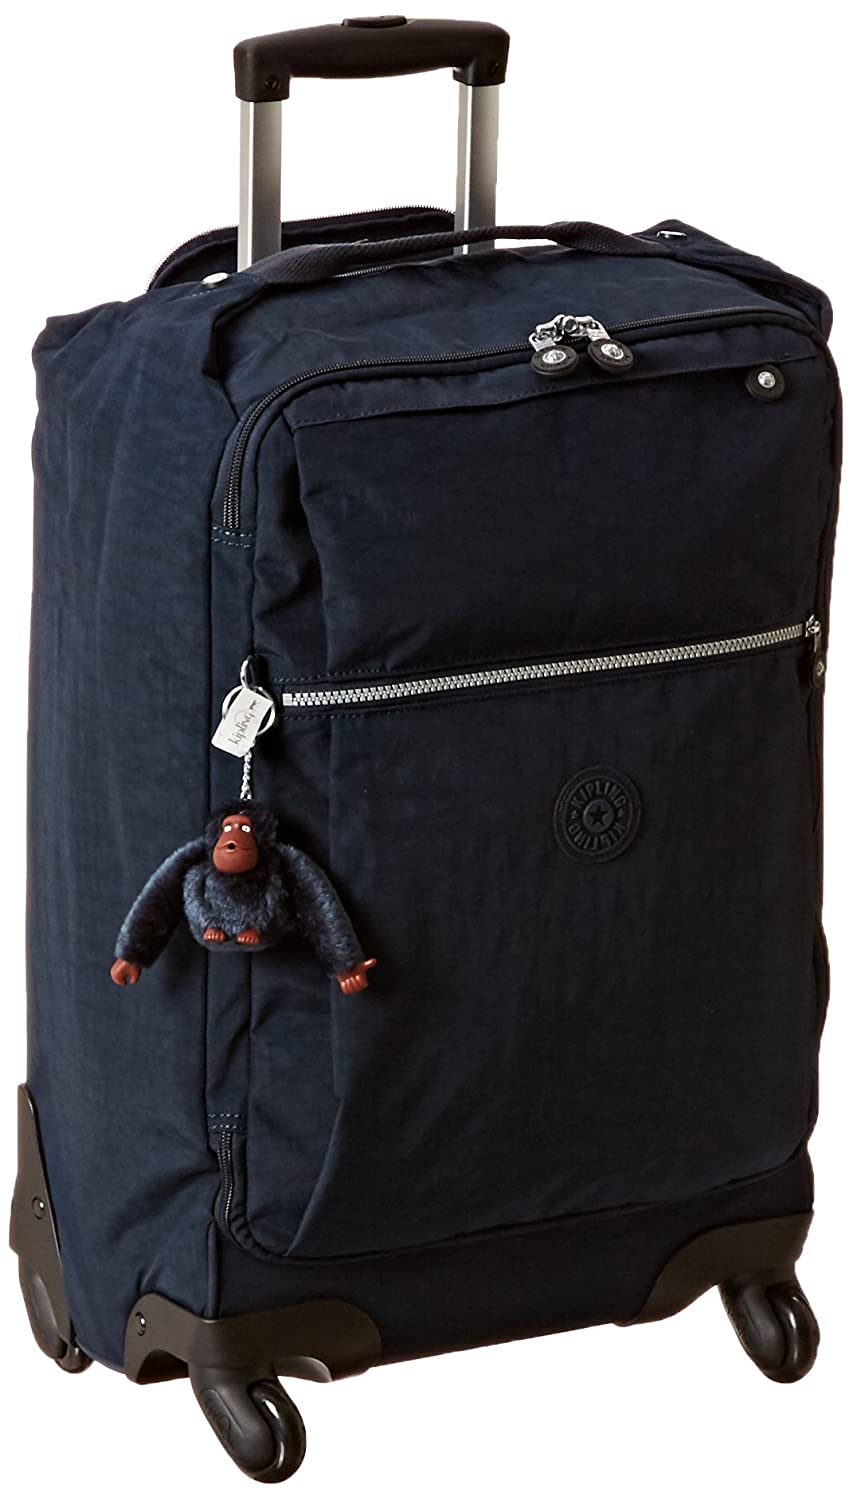 71dd24898764 Amazon.com  Kipling Darcey Solid Small Wheeled Luggage